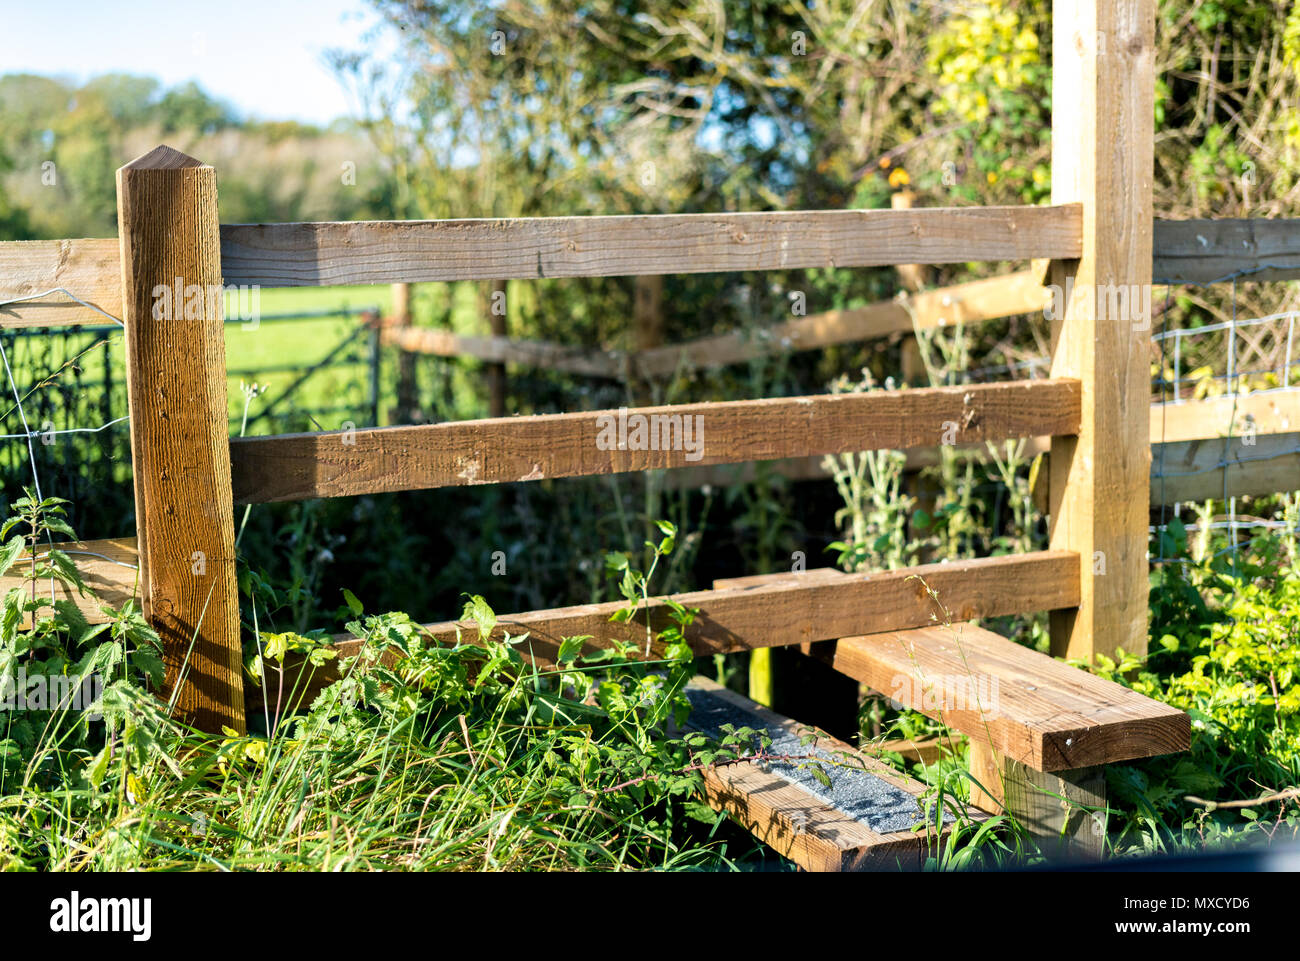 Typical Country Stile In Gloucestershire And The Cotswolds Uk Stock